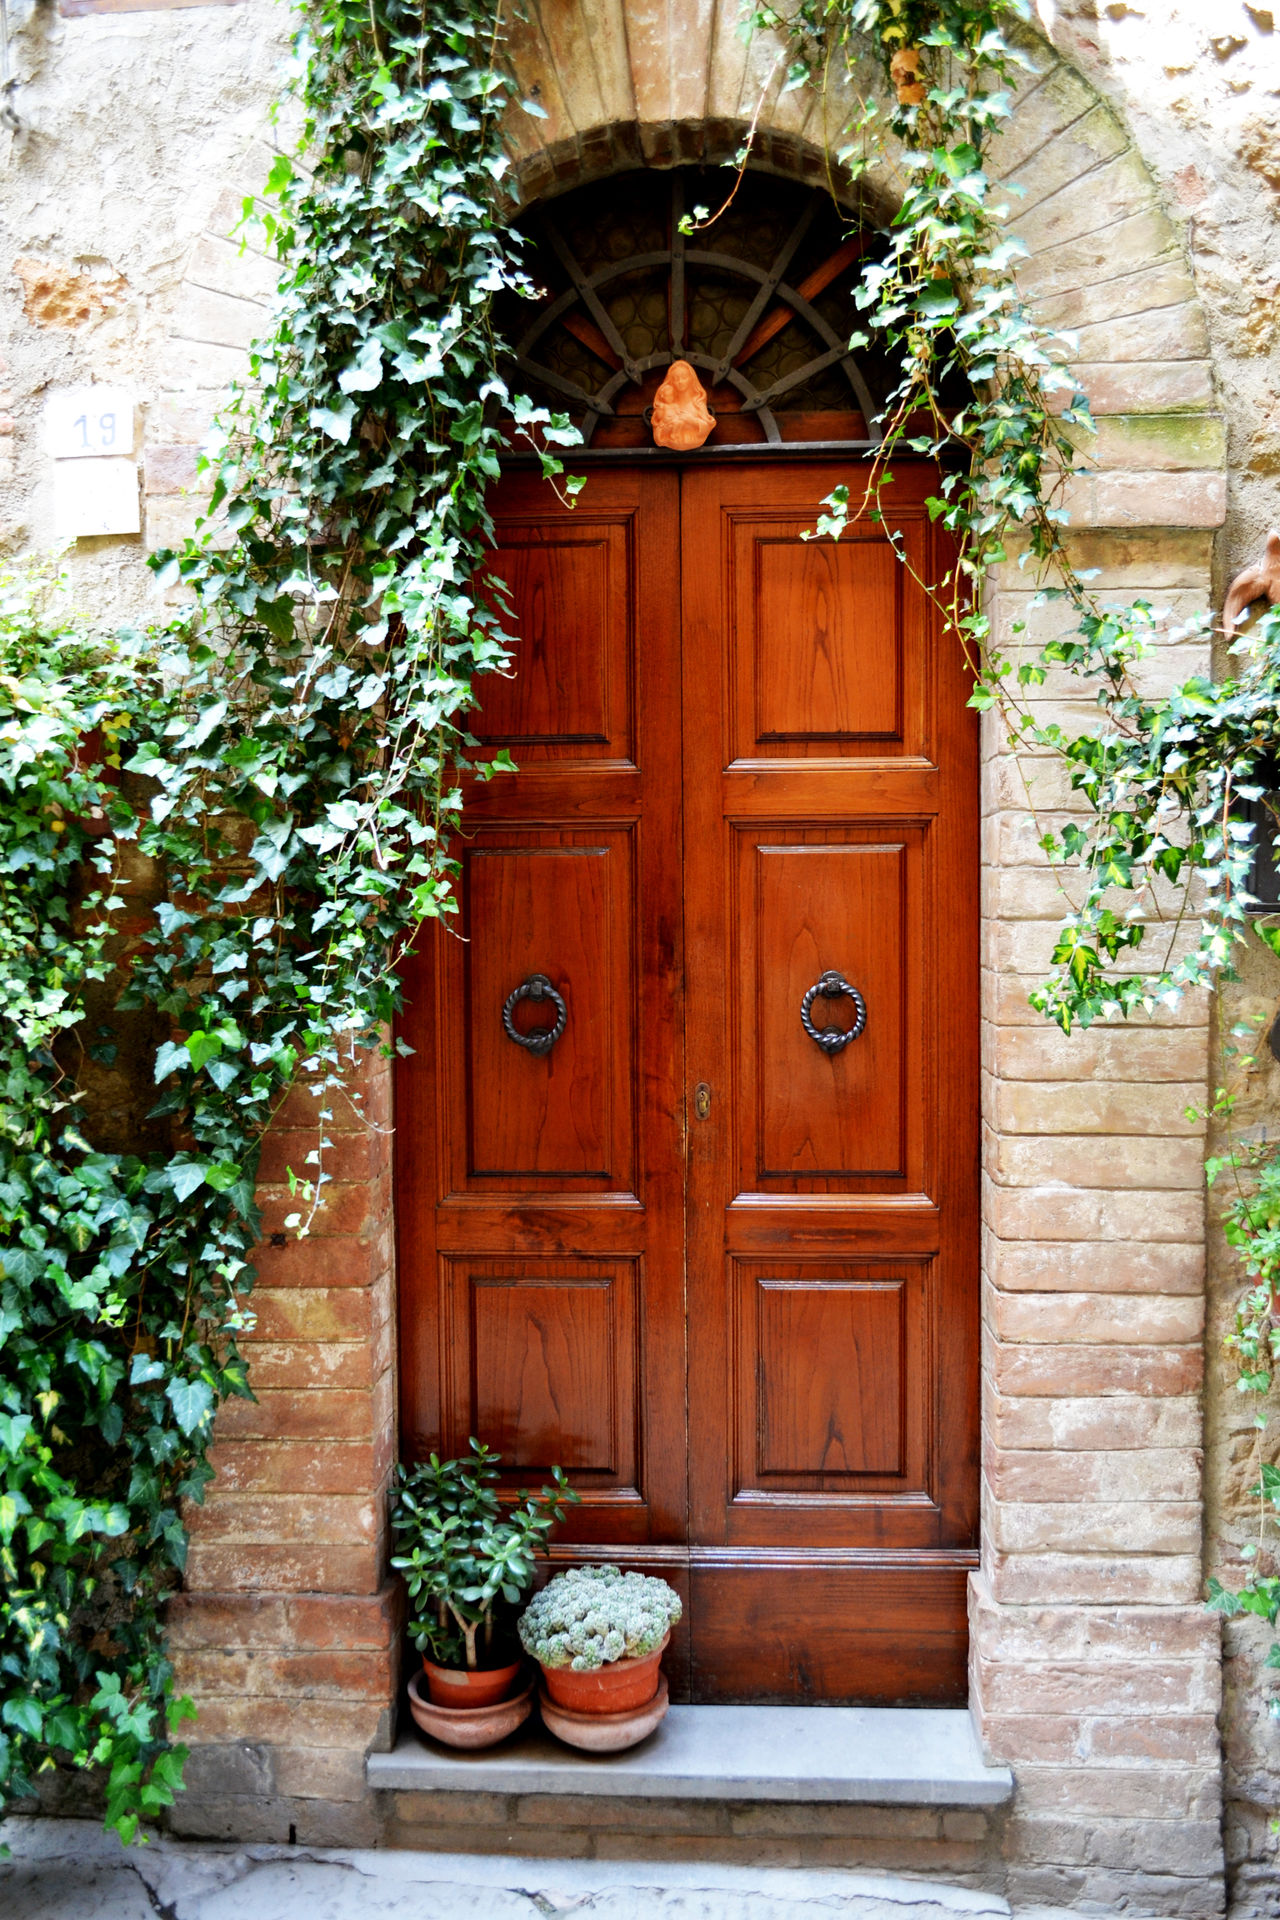 Architecture Door Doors Collection Entrance Flower Flower Pot House Italy No People Plant Potted Plant Traveling Traveling Photography Wood - Material Wooden Greetings From Italy